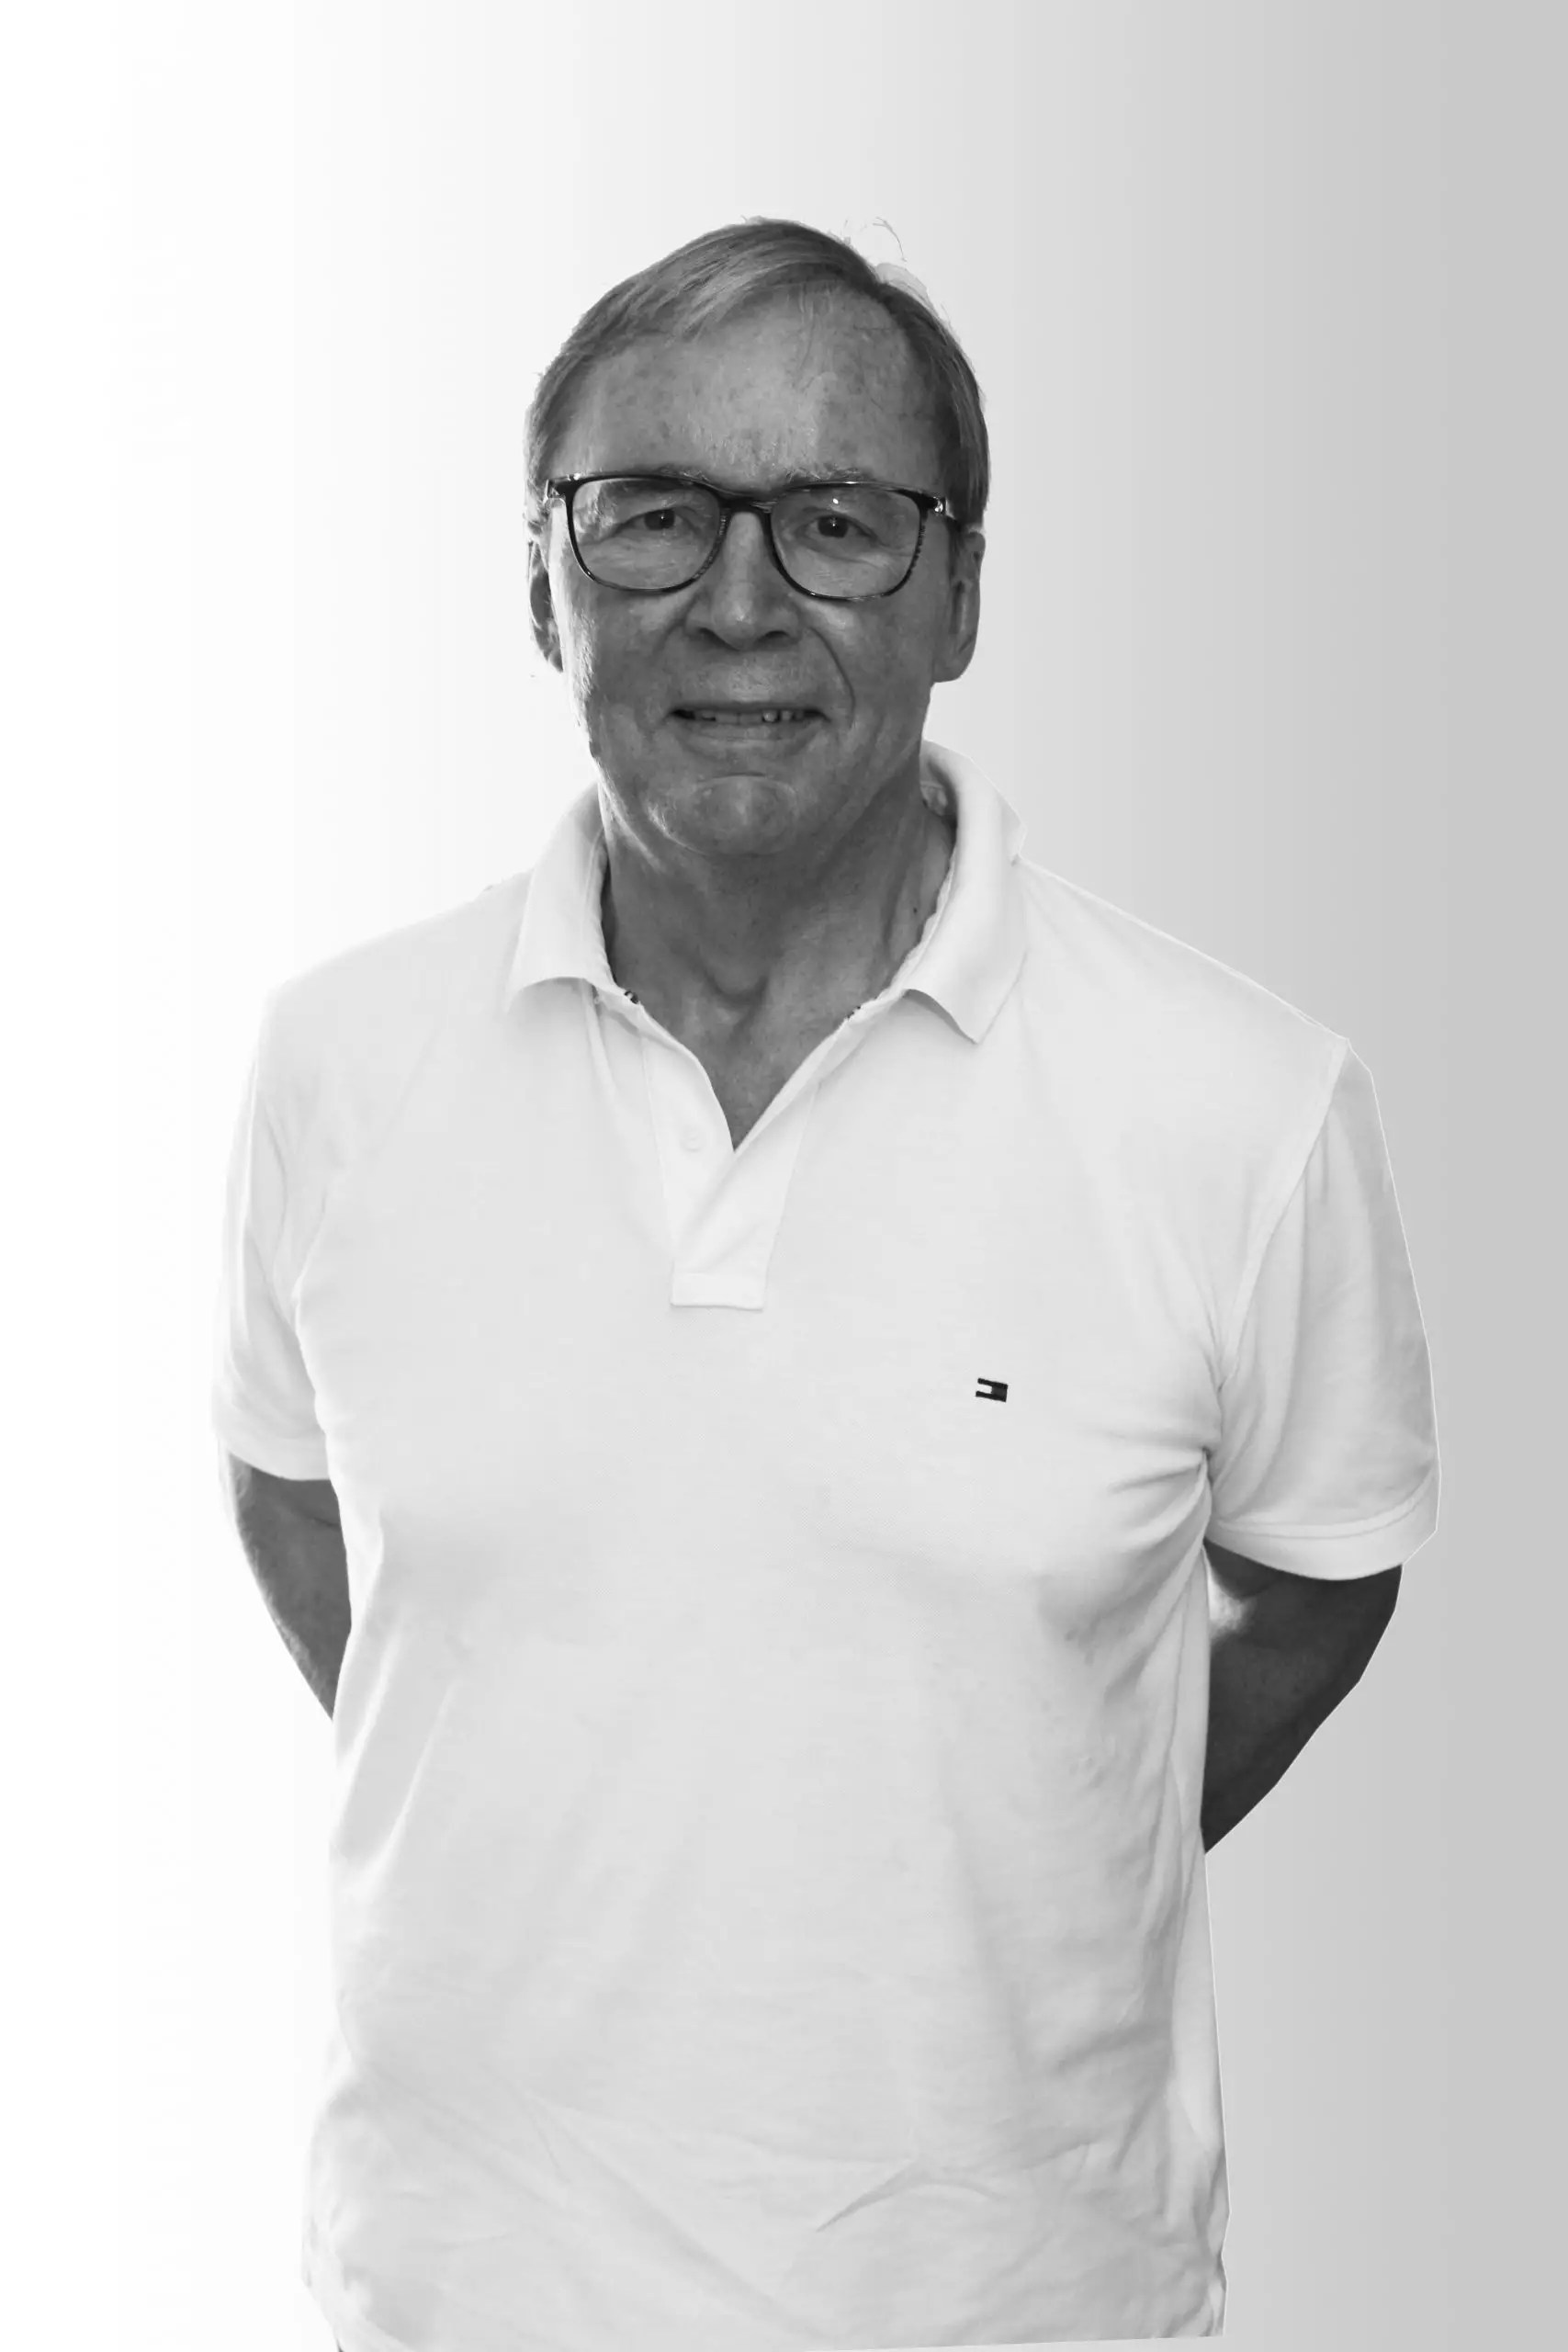 Karl Christian Koch – head of accounting and economy in Intelligent Space